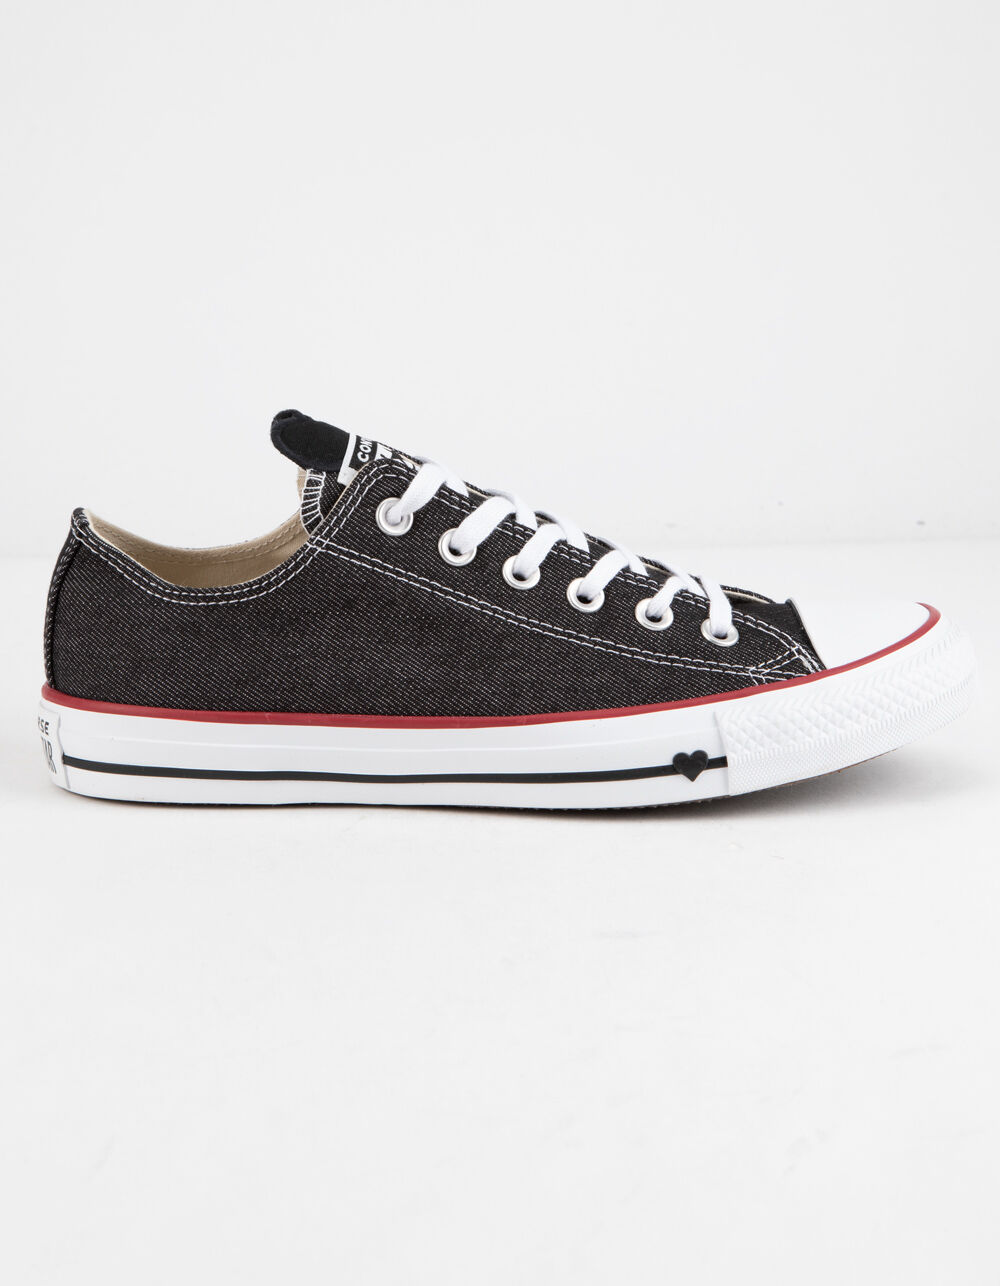 Image of CONVERSE CHUCK TAYLOR ALL STAR DENIM LOVE LOW TOP SHOES